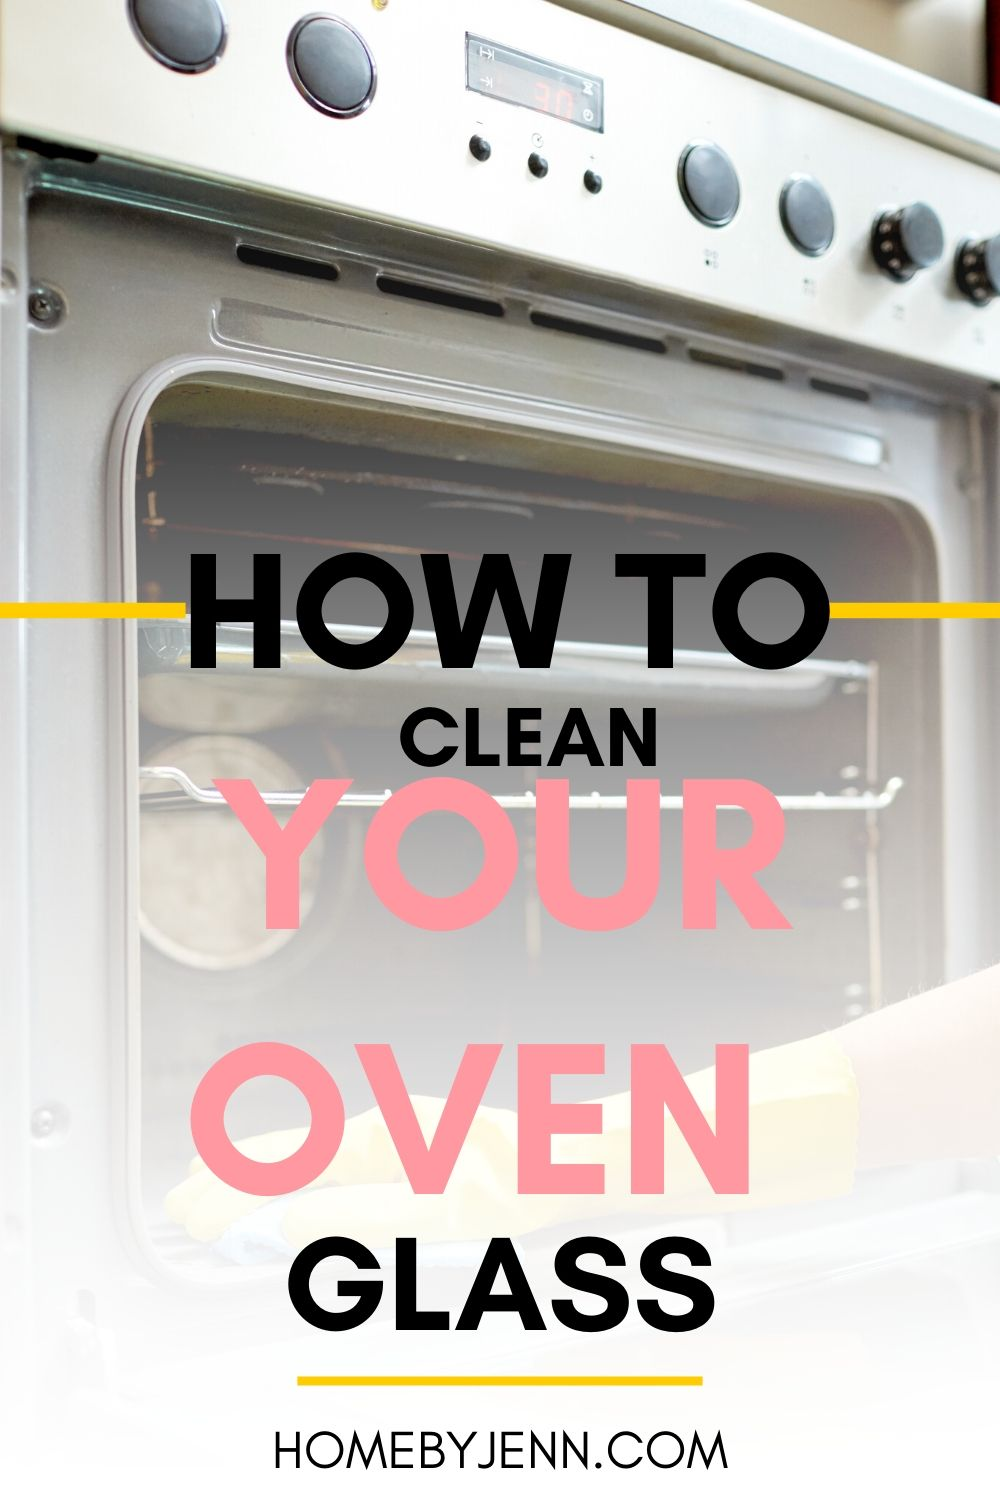 Learn how to clean your oven glass.  These cleaning tips will show you how to remove the caked on food that sticks to the oven glass.  You'll learn exactly how to enjoy a fully clean oven. #cleaningtips #cleaninghacks #cleaningtipsandtricks #cleankitchen #cleanoven #cleanovenglass via @homebyjenn